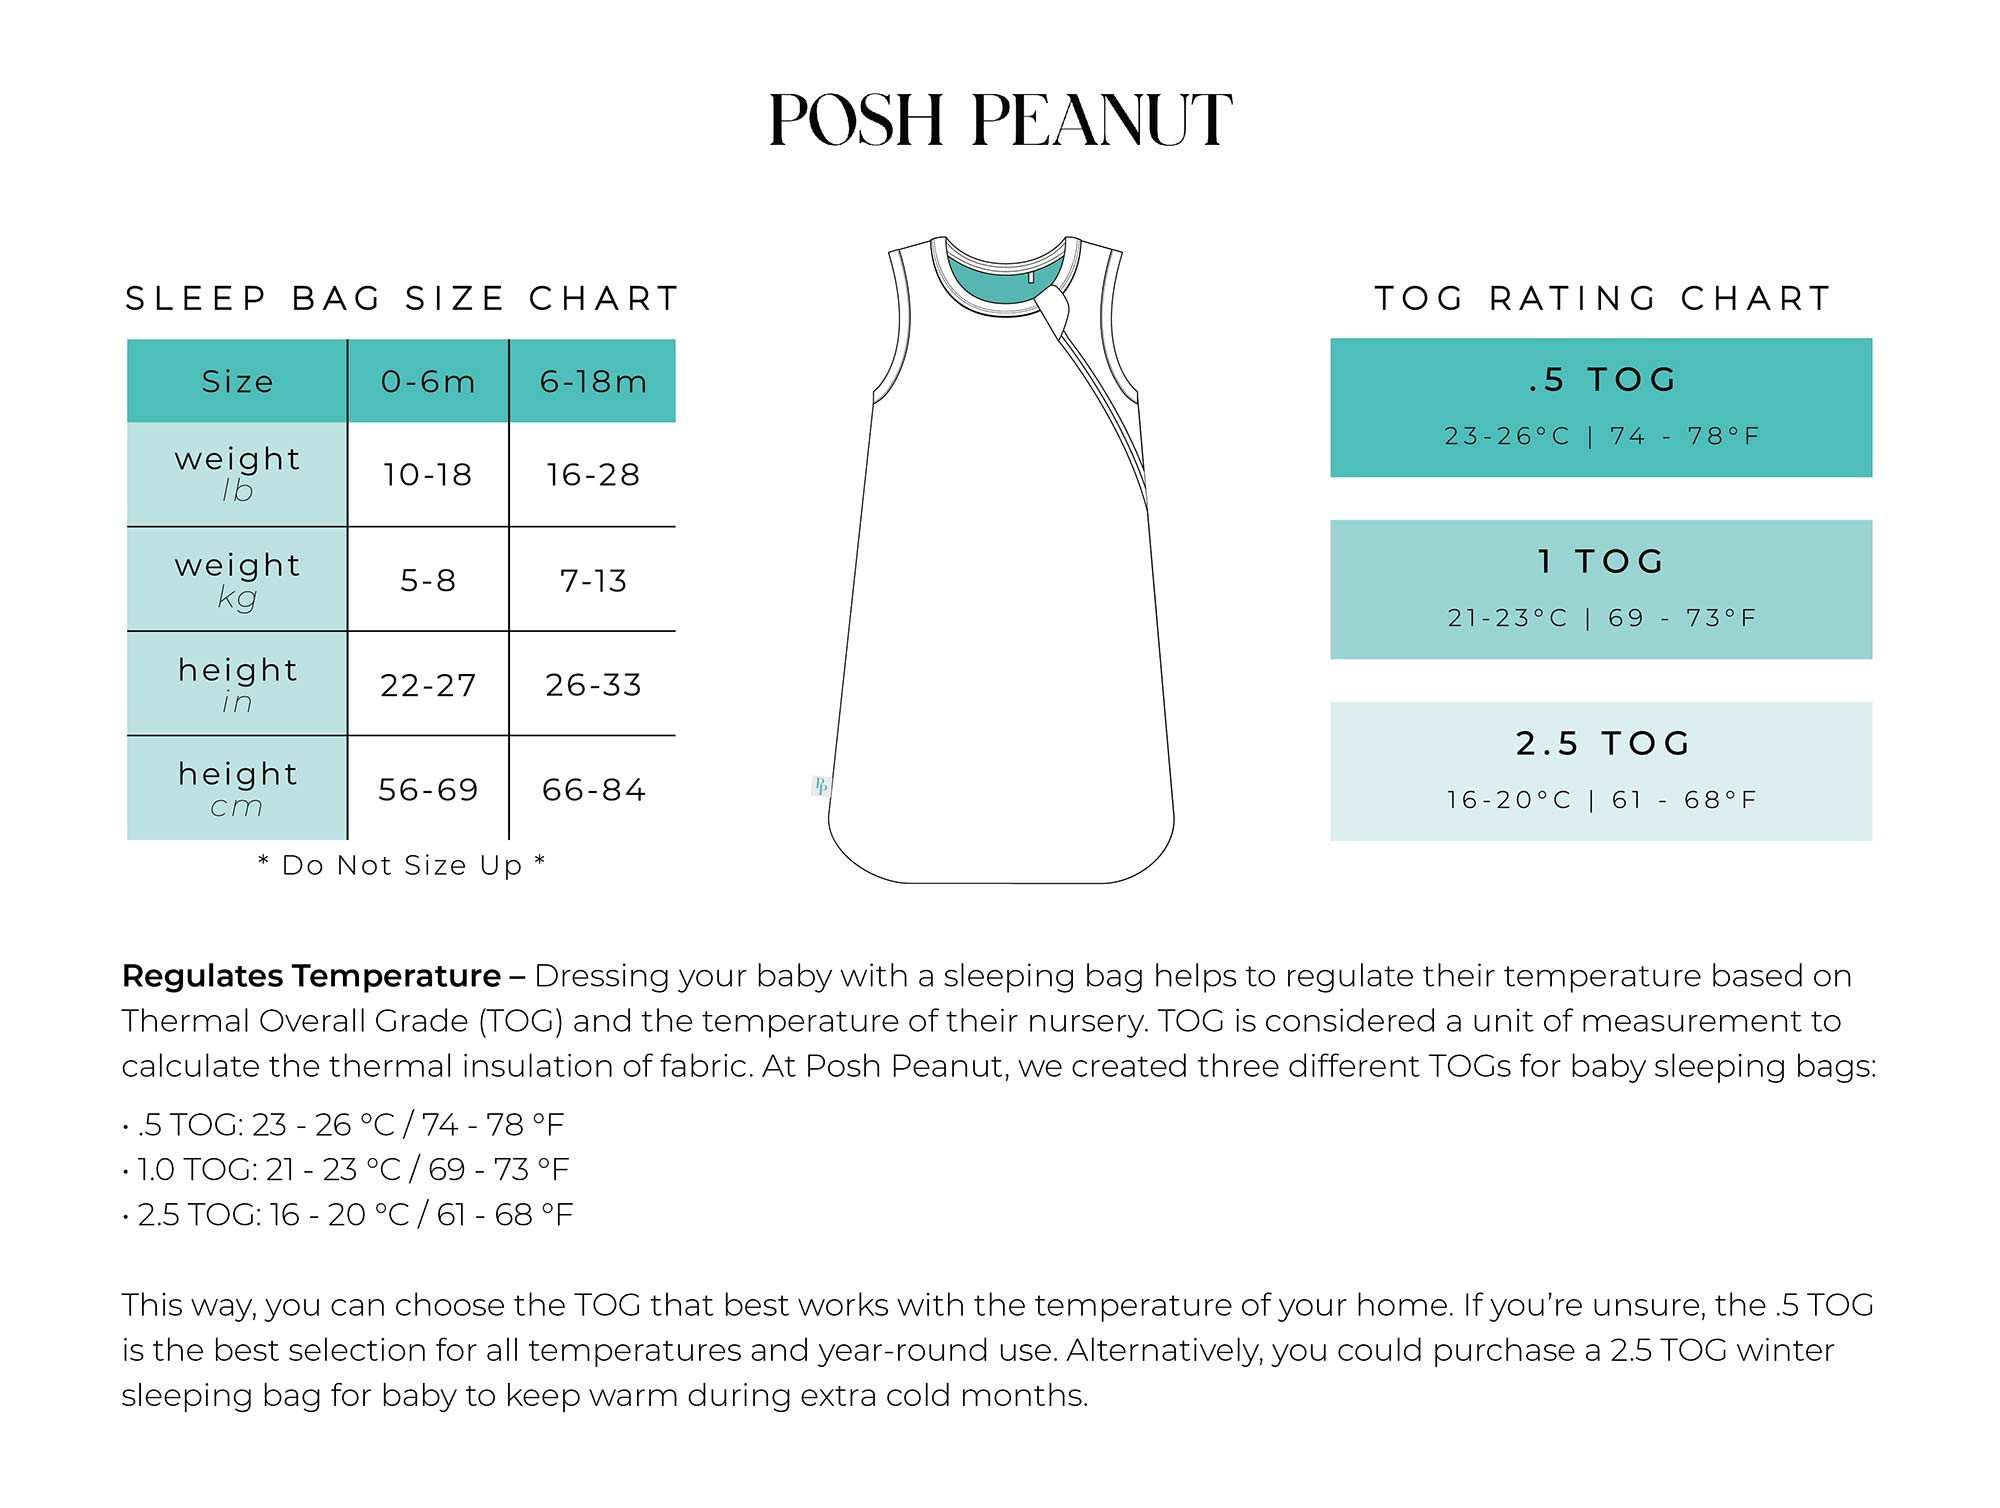 Sleeping Bag Size Chart and TOG Information